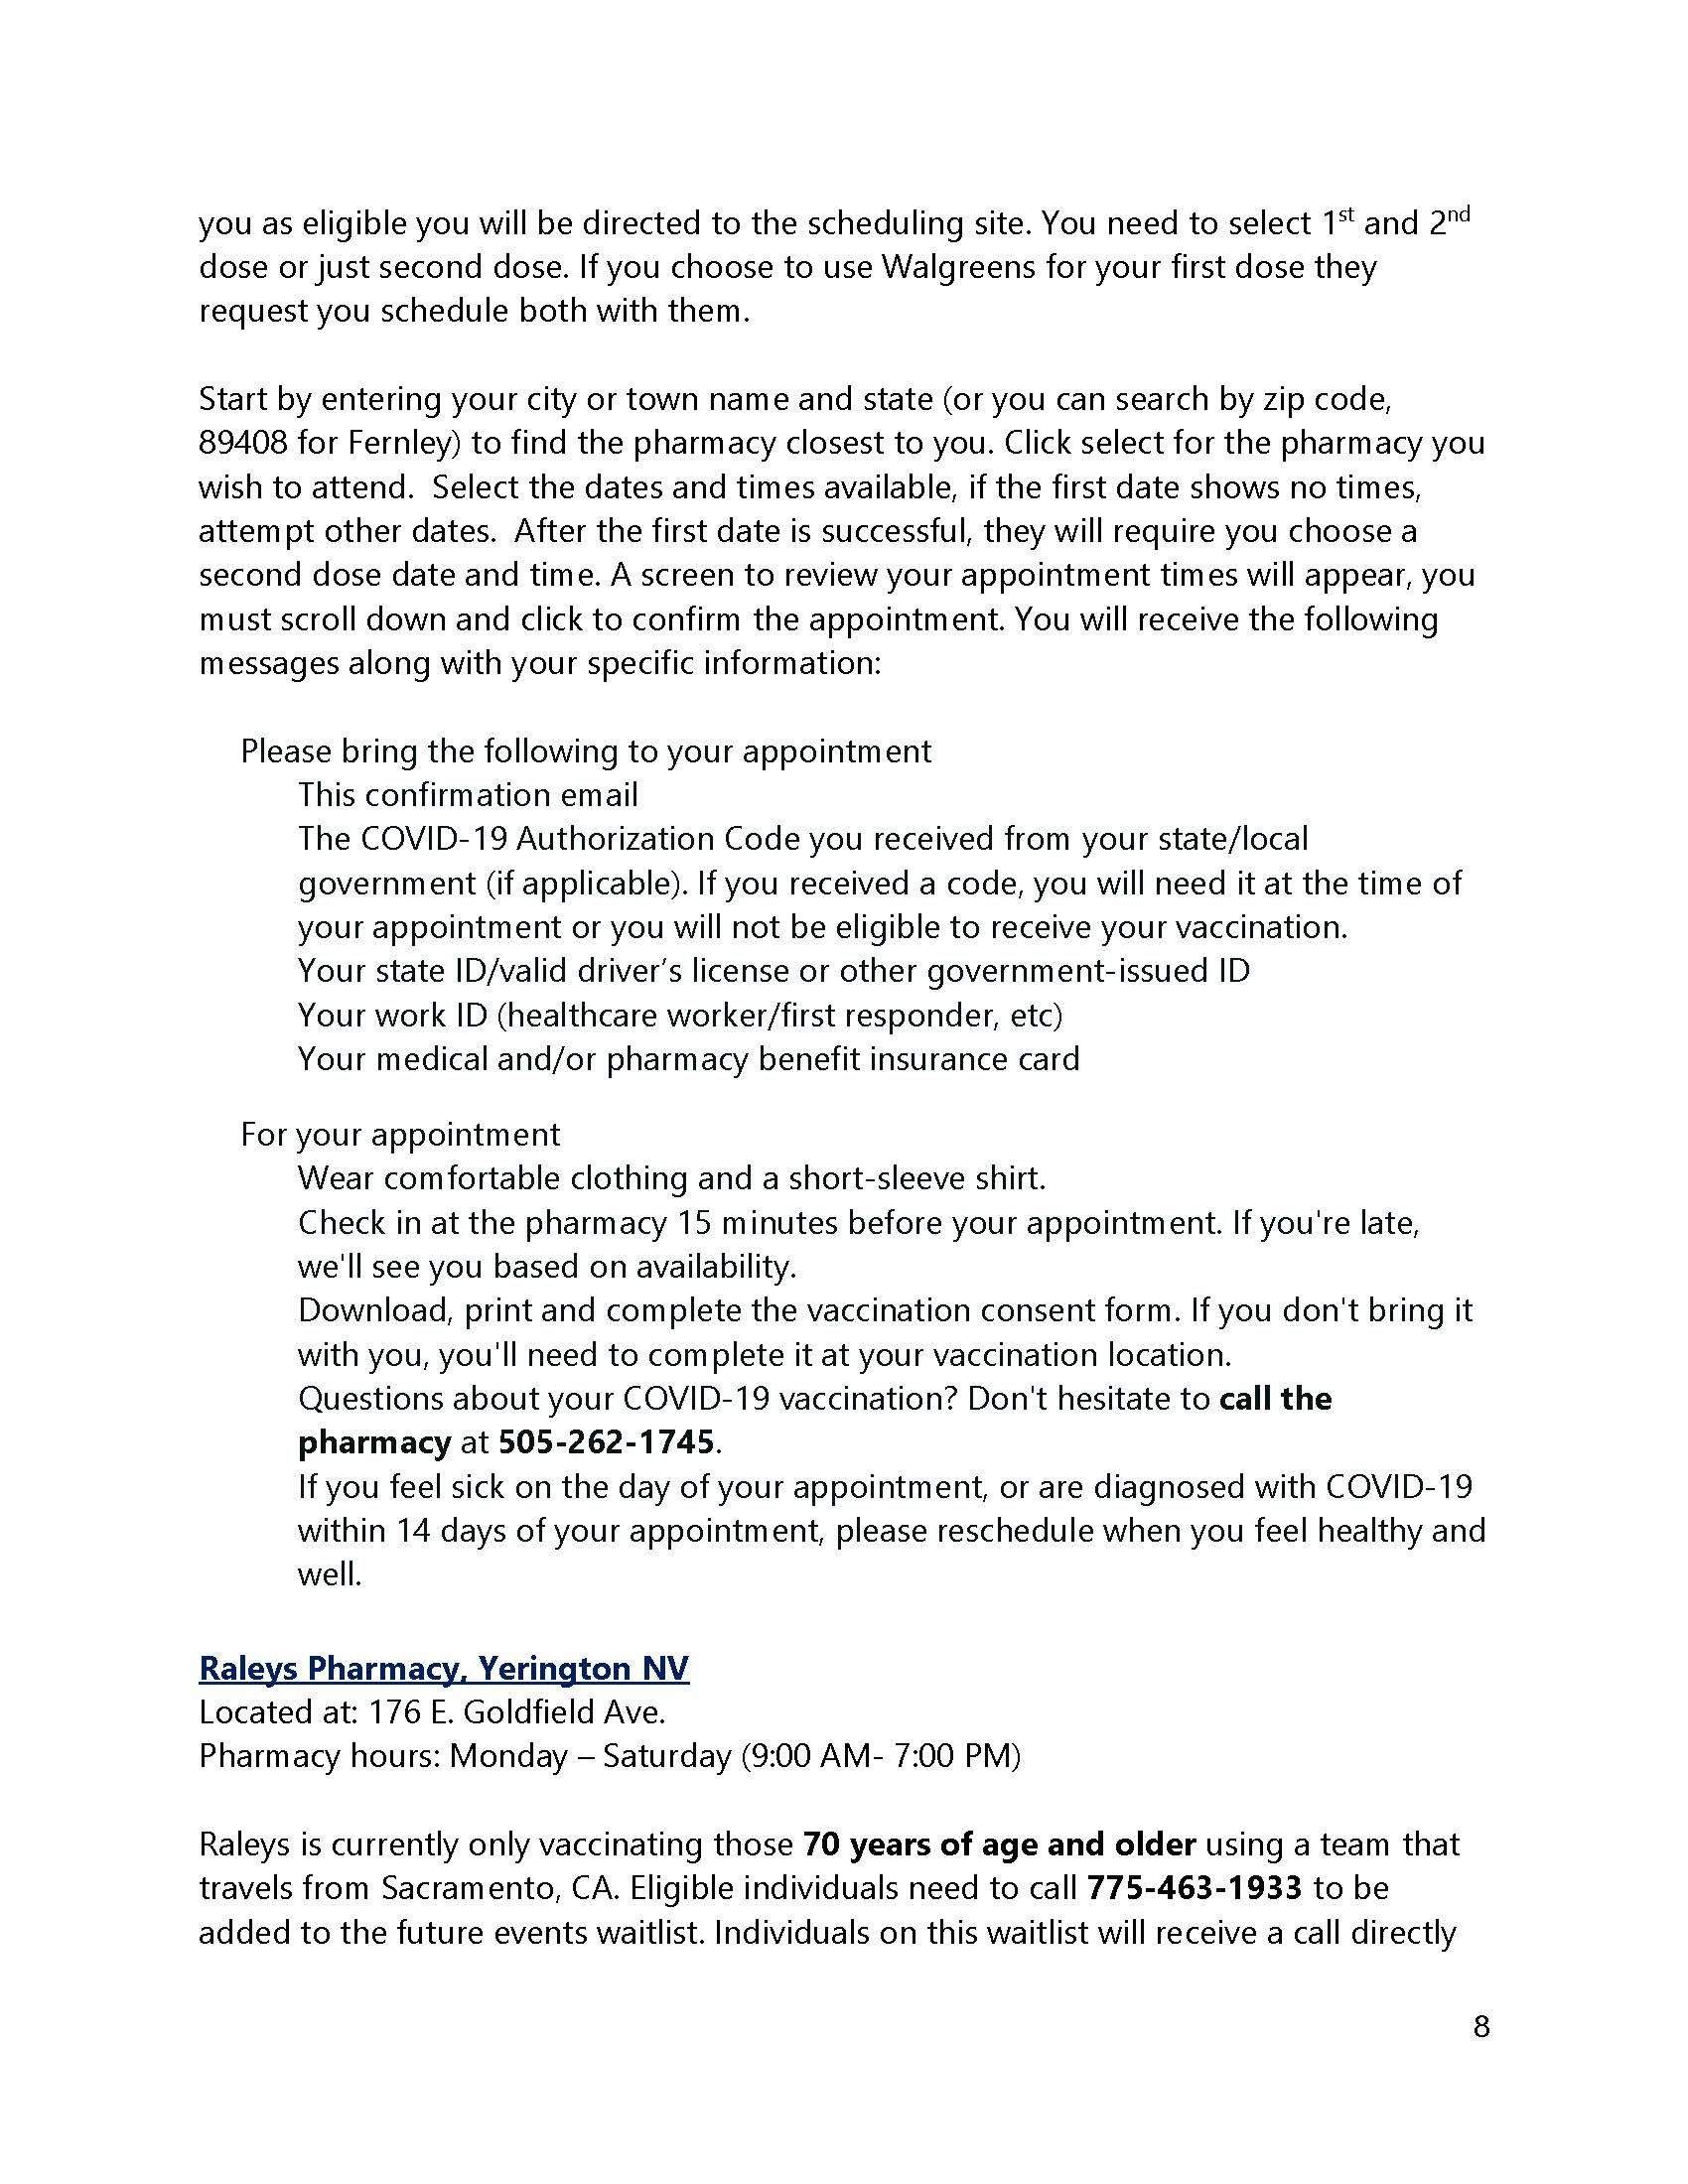 LCHS Vaccination Resource Guide (003)_Page_8